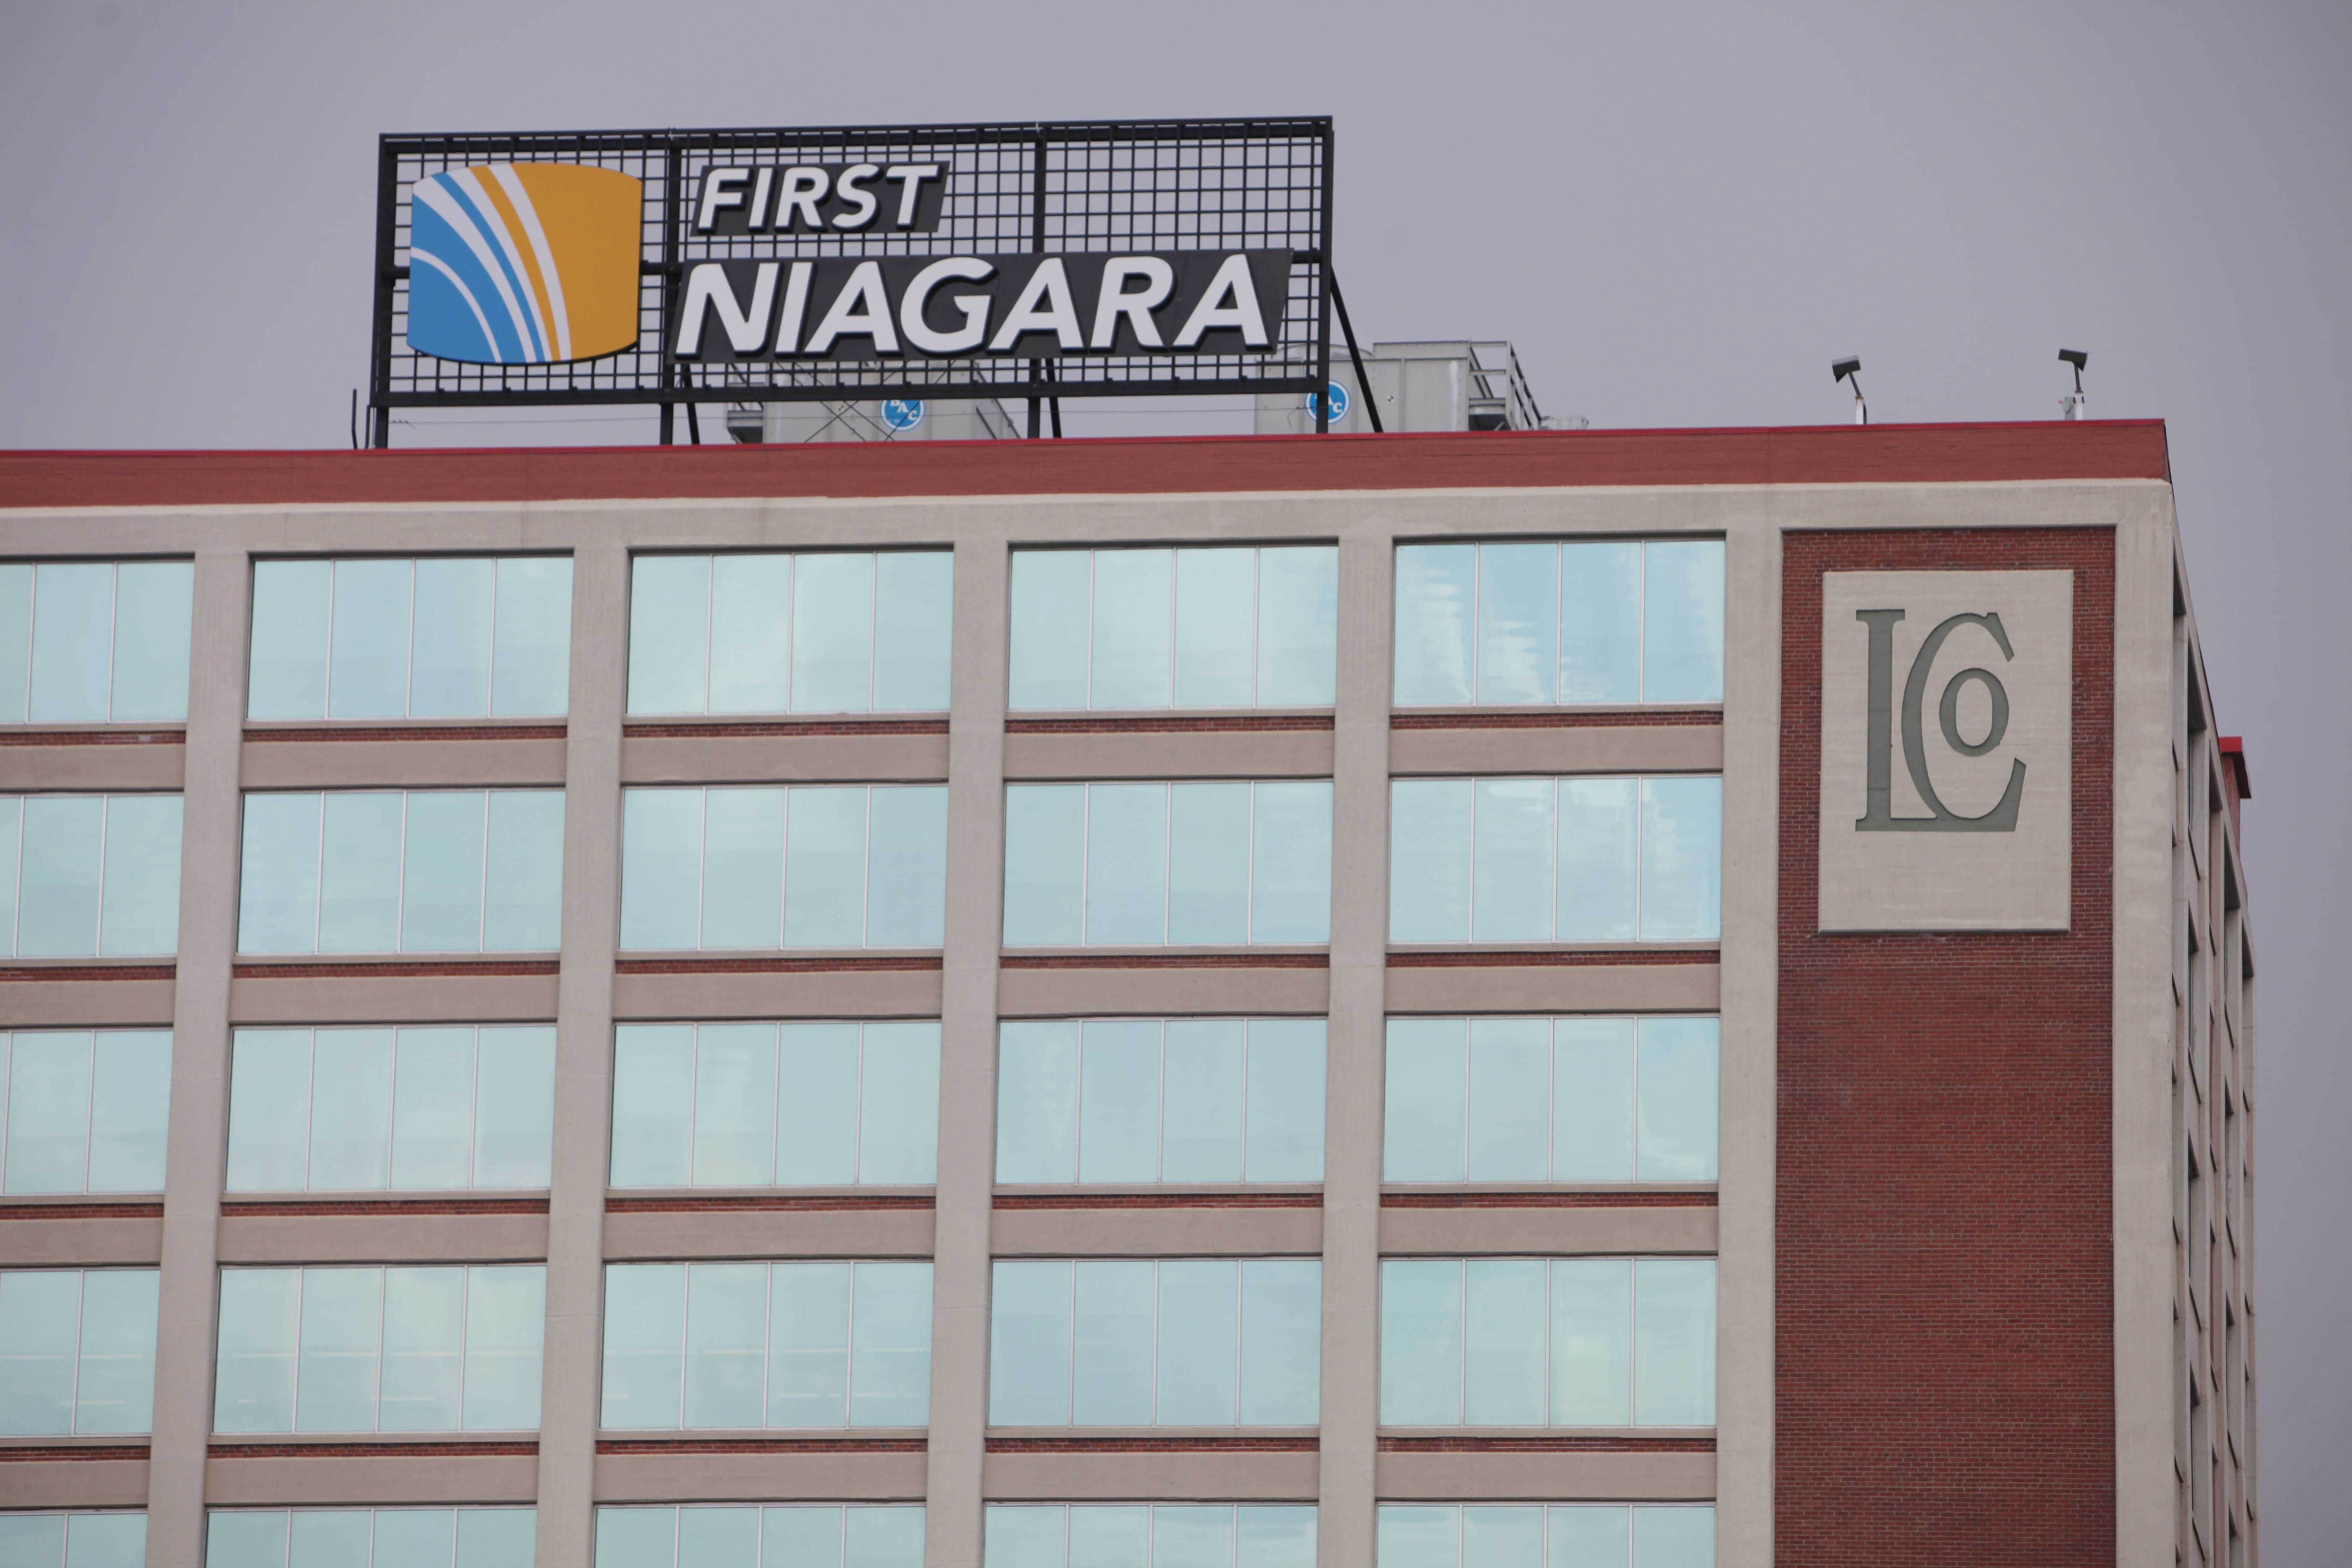 First Niagara Financial Group said the drop in its earnings is due to the impact low interest rates had on competitiveness.